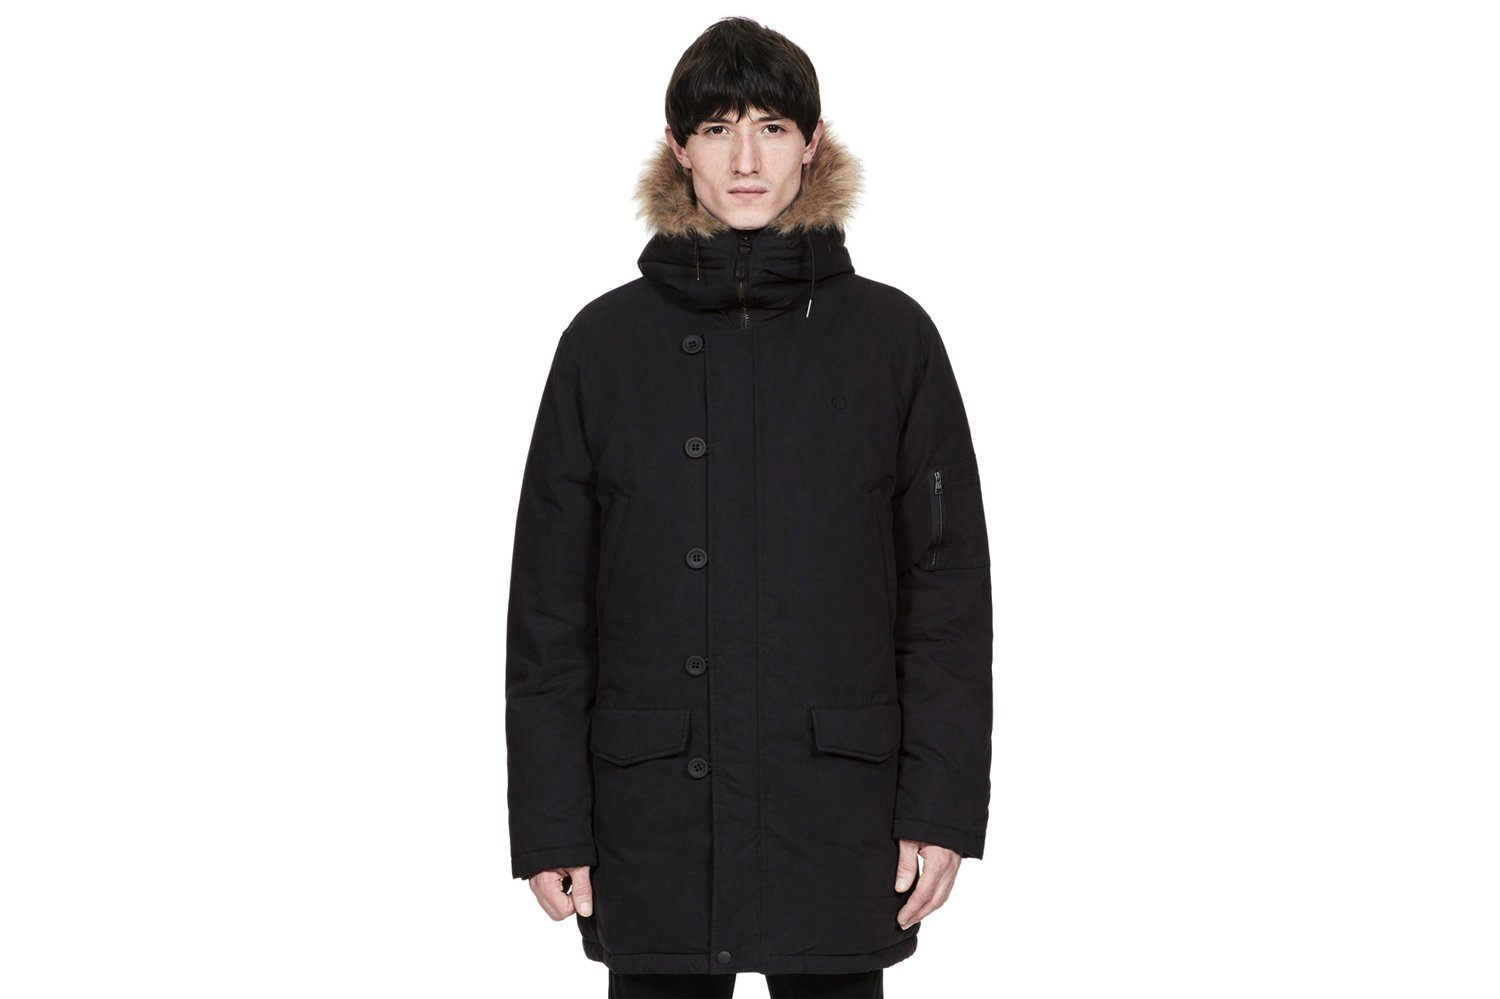 DOWN SNORKEL PARKA-J4517 MENS SOFTGOODS FRED PERRY BLACK L